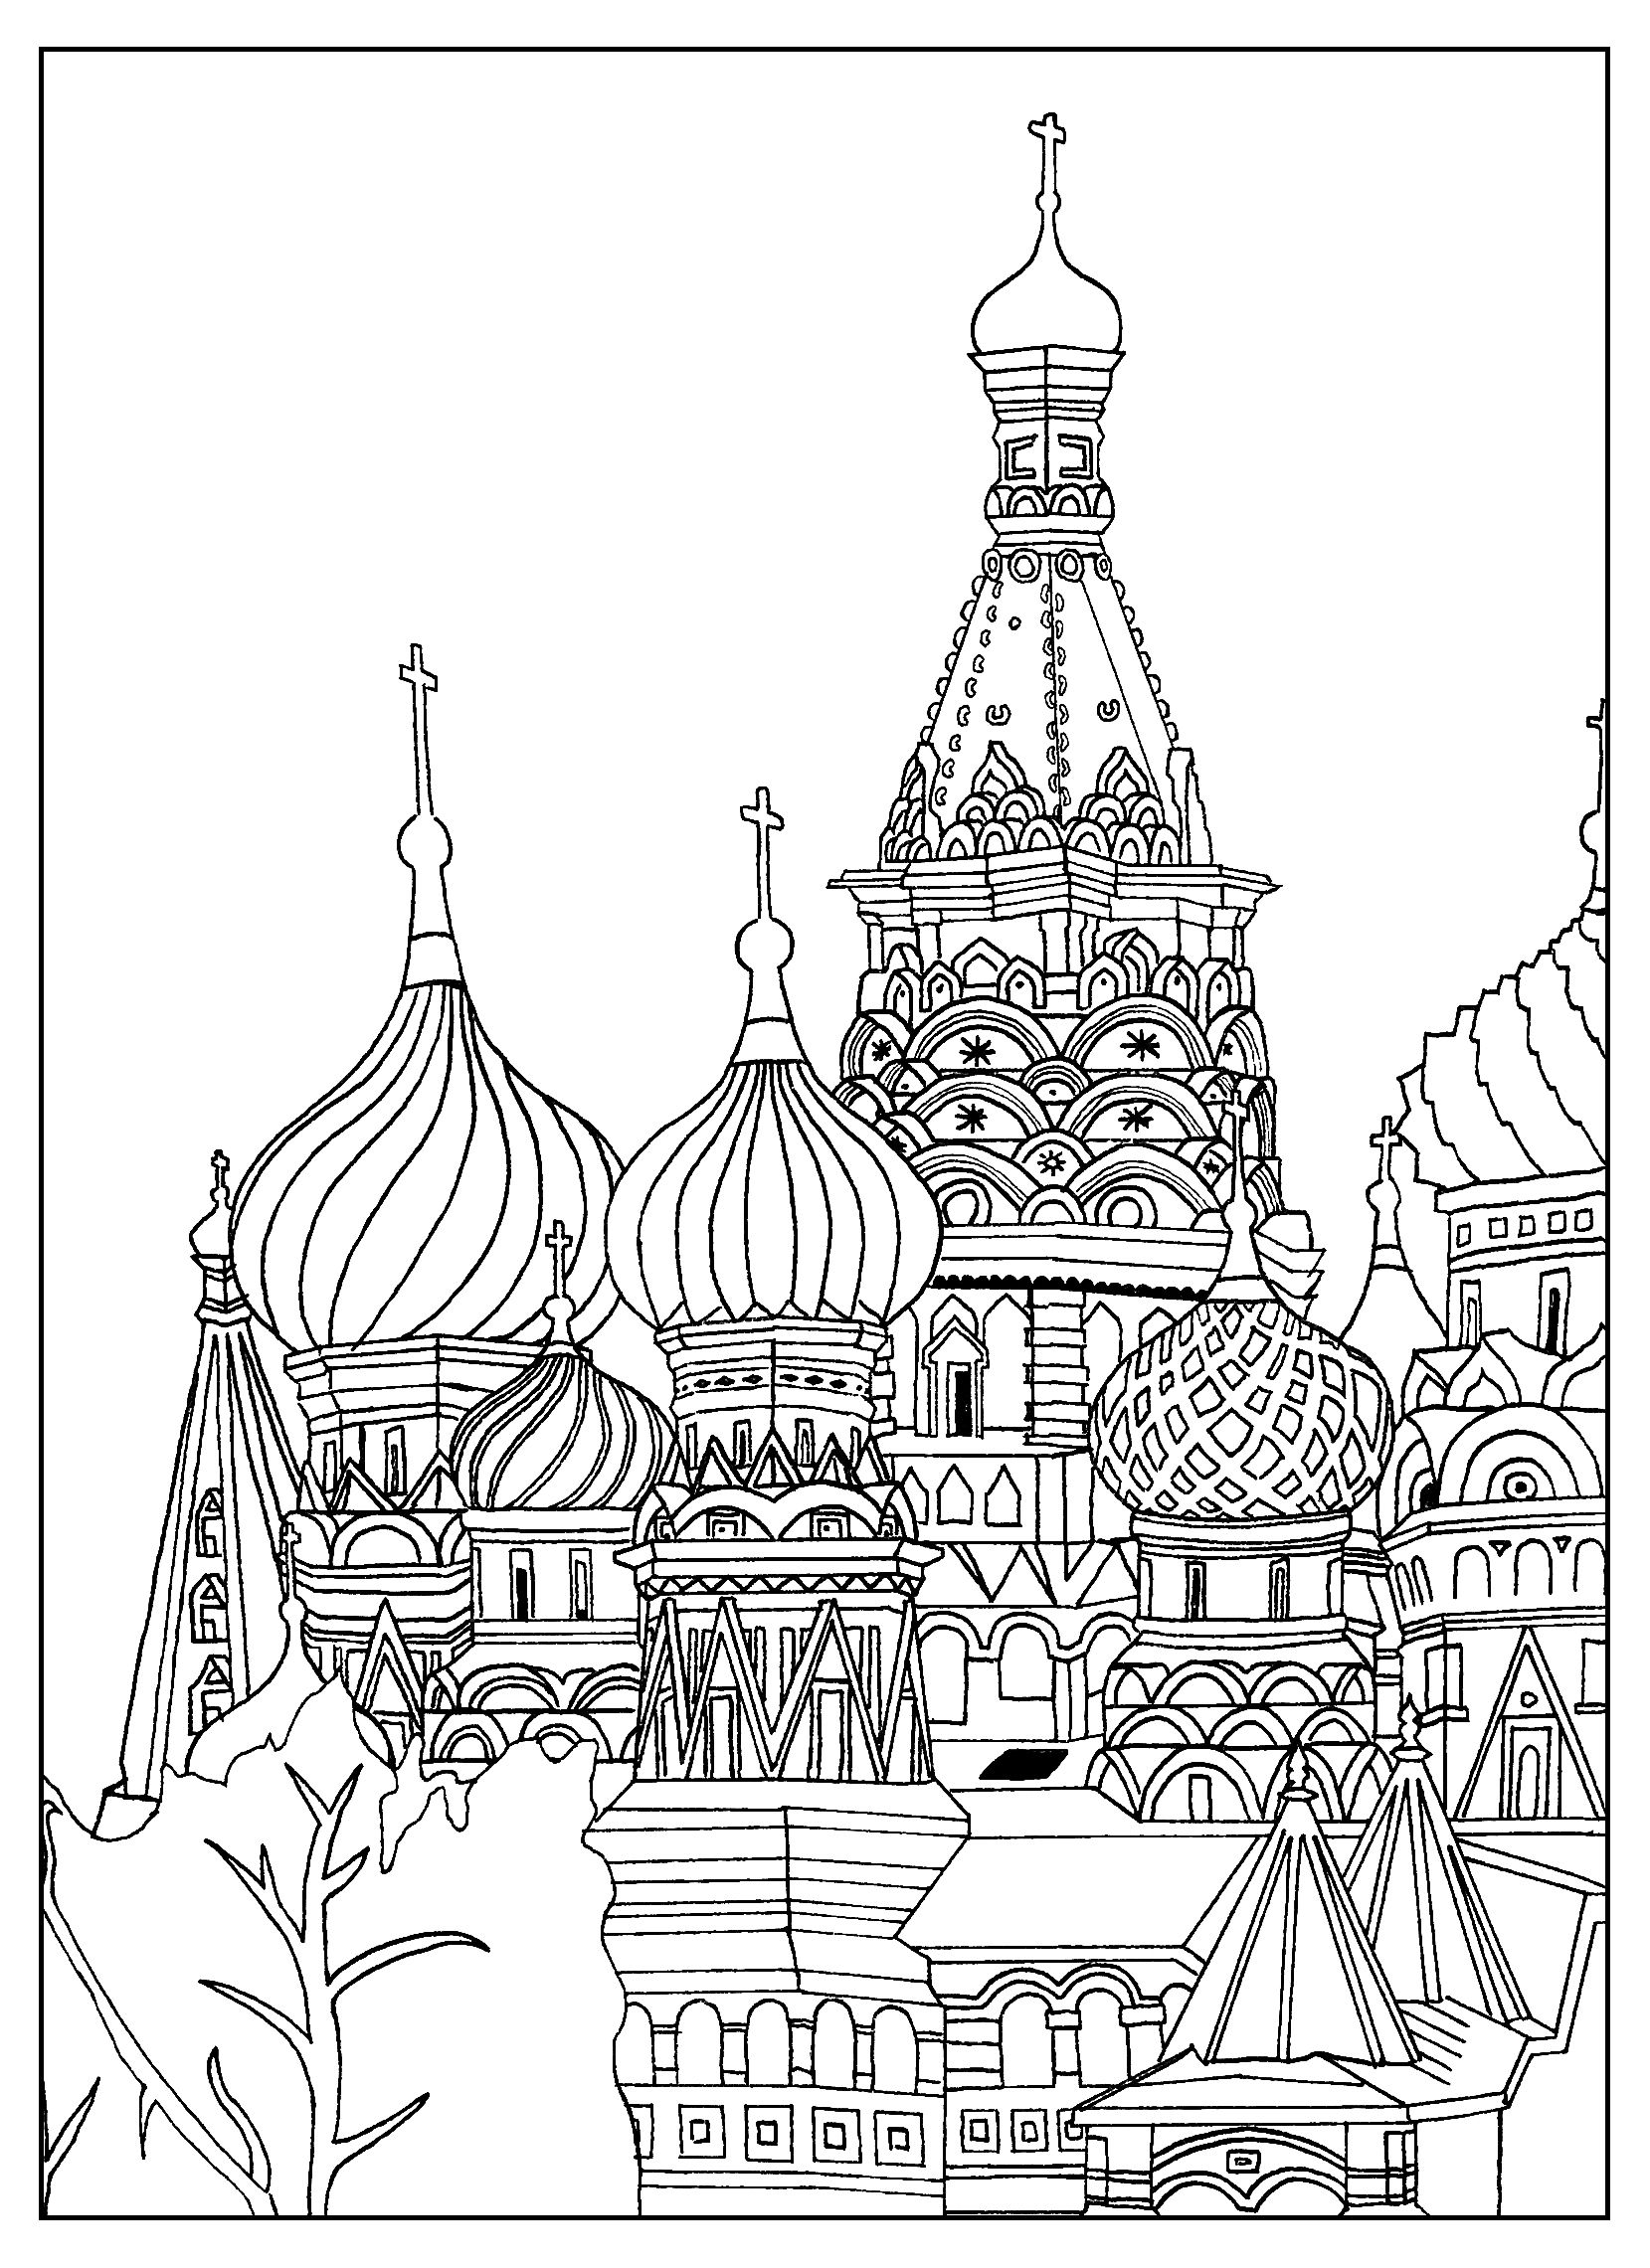 Free coloring pages eiffel tower - Free Adult Coloring Page Of The Saint Basil S Cathedral In Red Square In Moscow